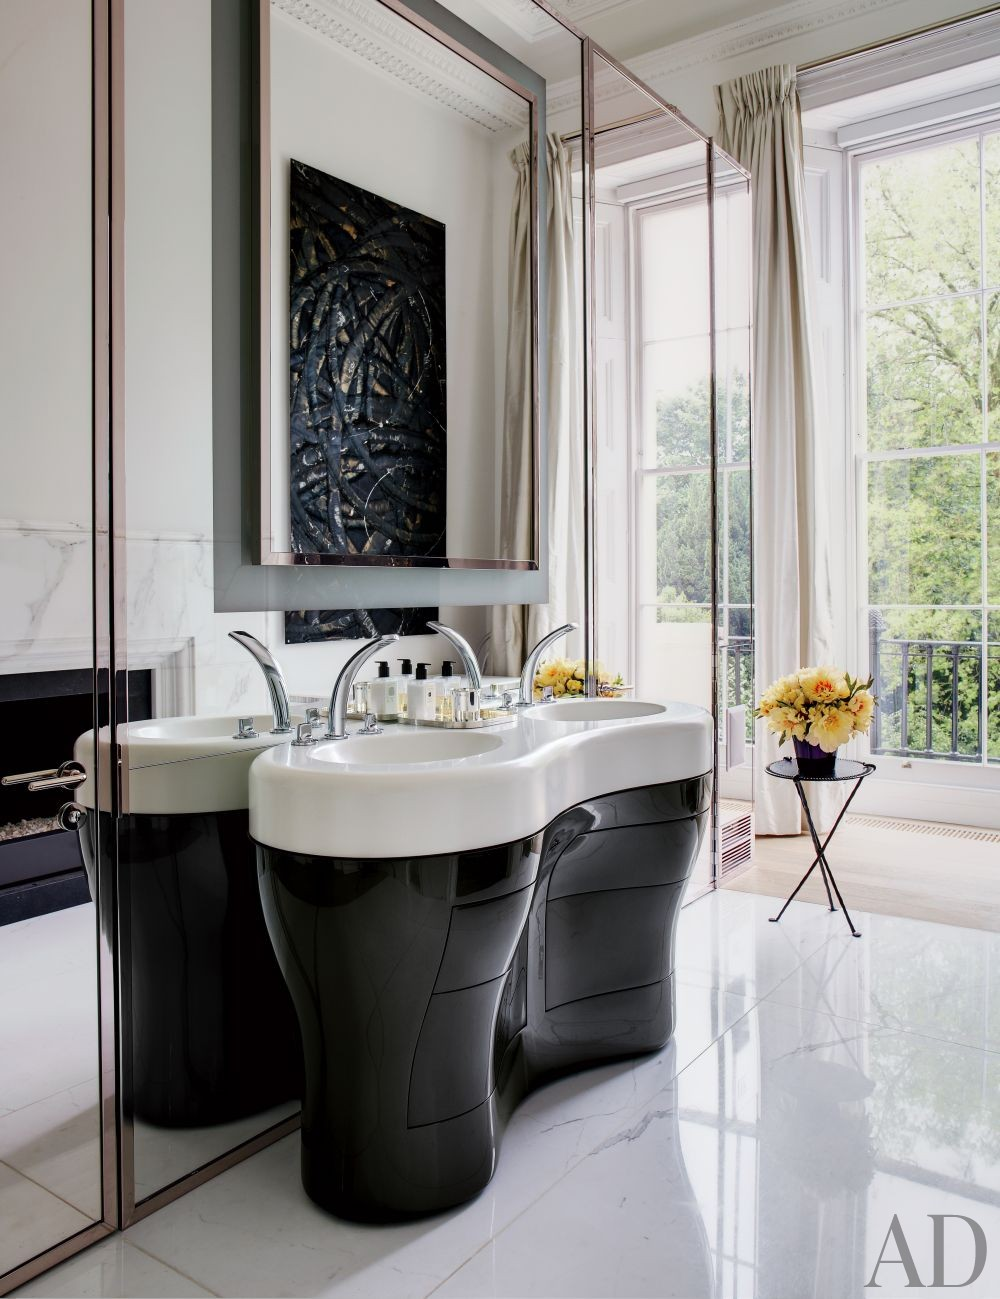 Contemporary Bathroom by Francis Sultana Ltd. and Thomas Croft Architects in London, England